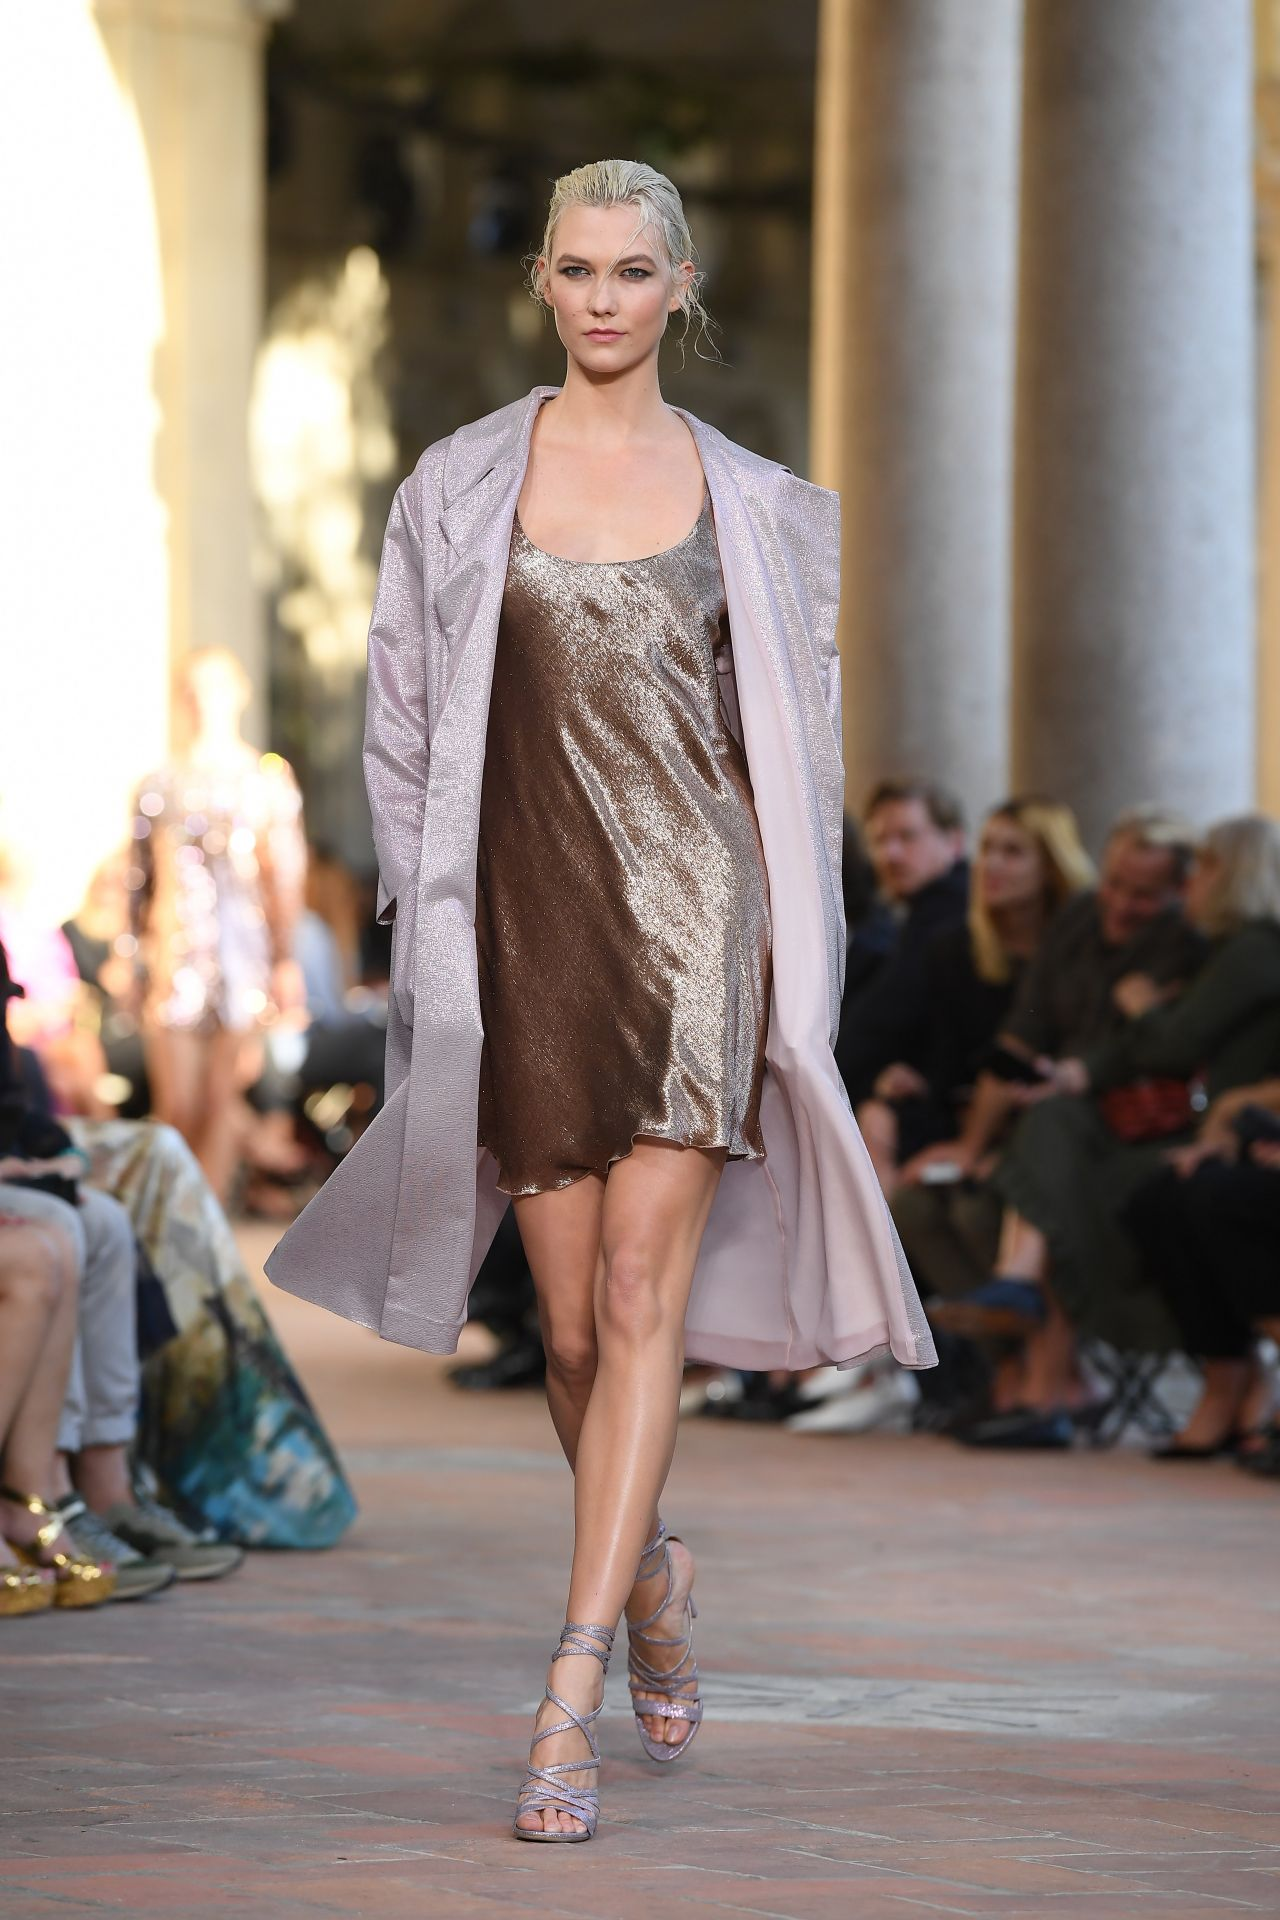 Karlie Kloss Walks Alberta Ferretti Show in Milan 09/20/2017